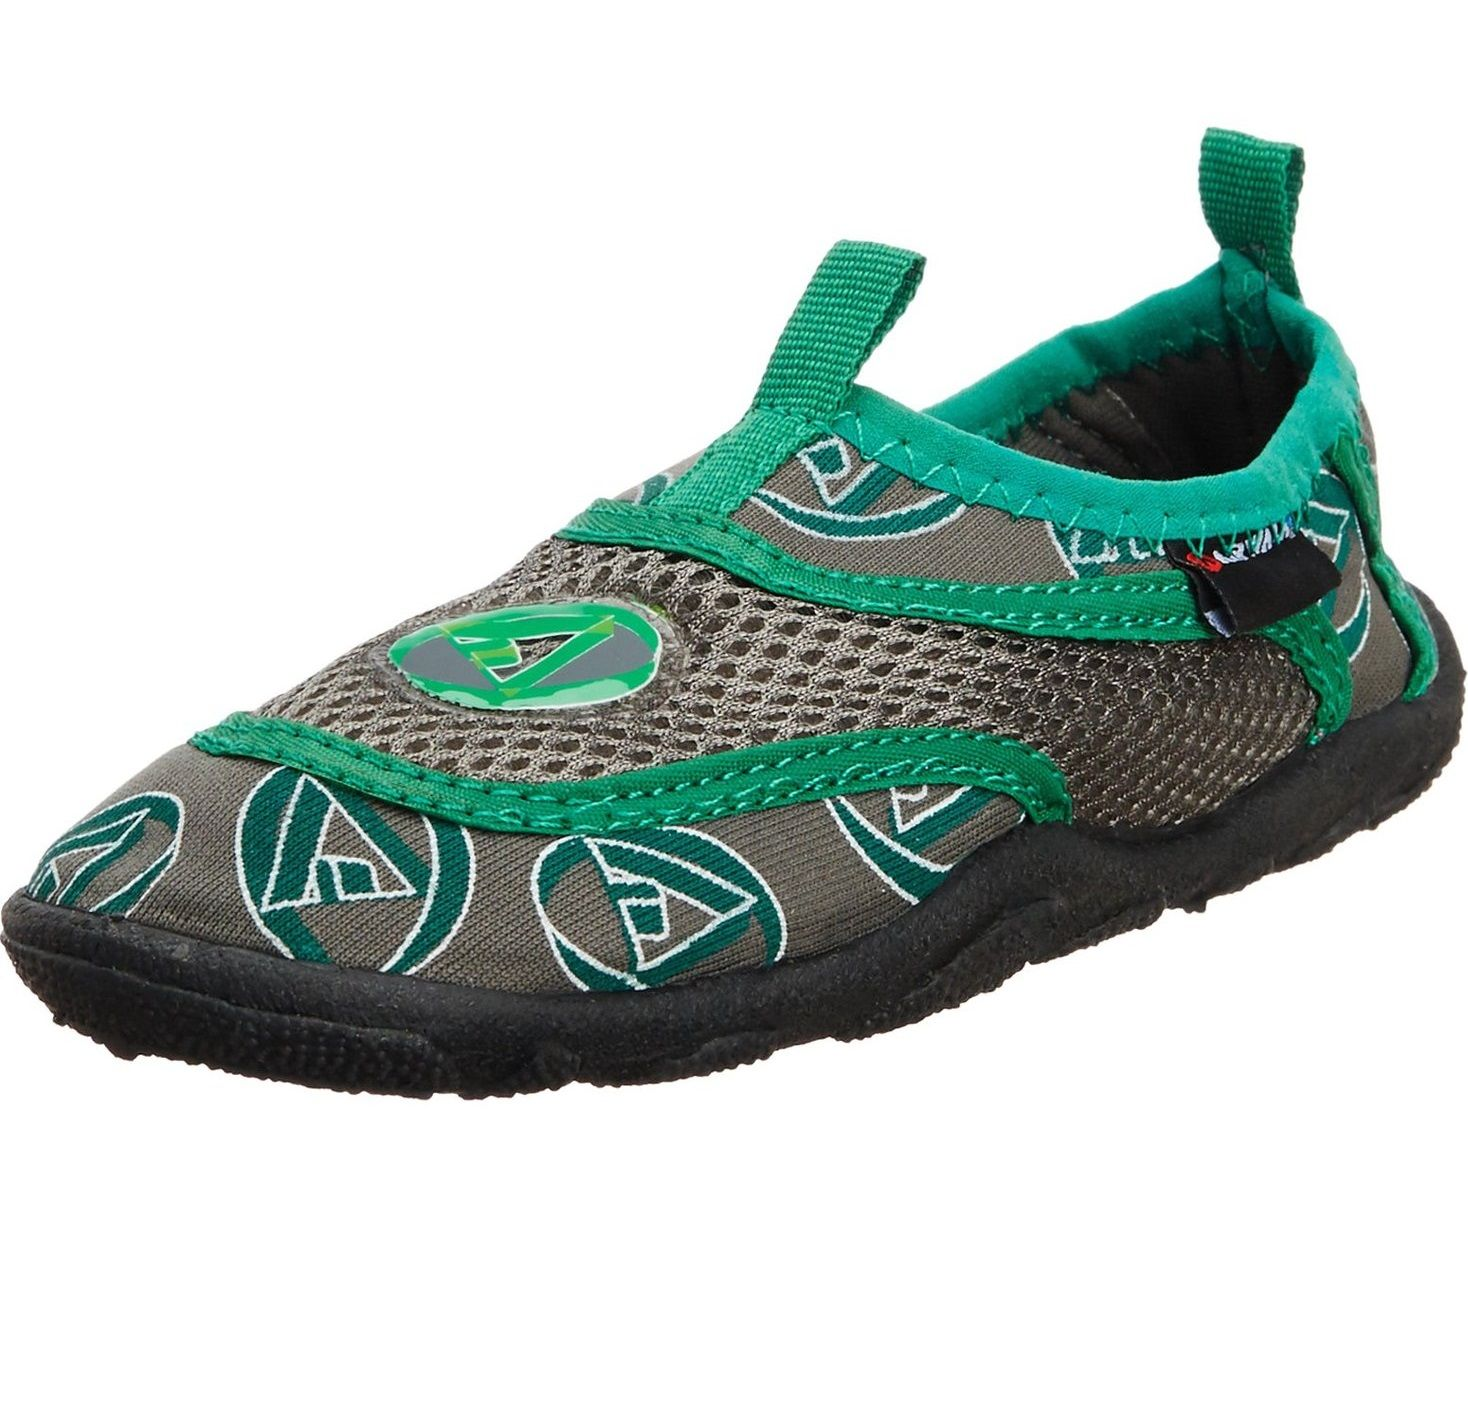 b05d98a57d7c Buy Baby Boys Shoes Online At Rs 234 Lowest Price from Amazon India.  Available In All Sizes   Variety Like Sports Shoes   Canvas Shoes.Shopping  With Price